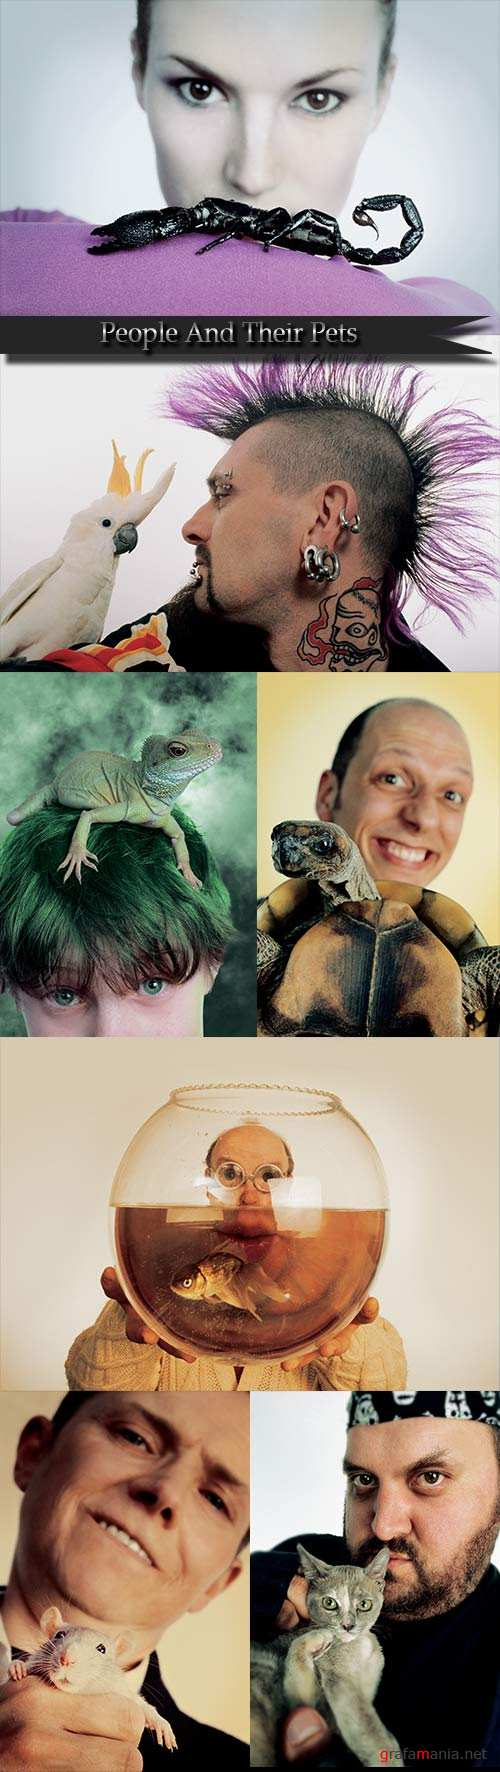 People And Their Pets